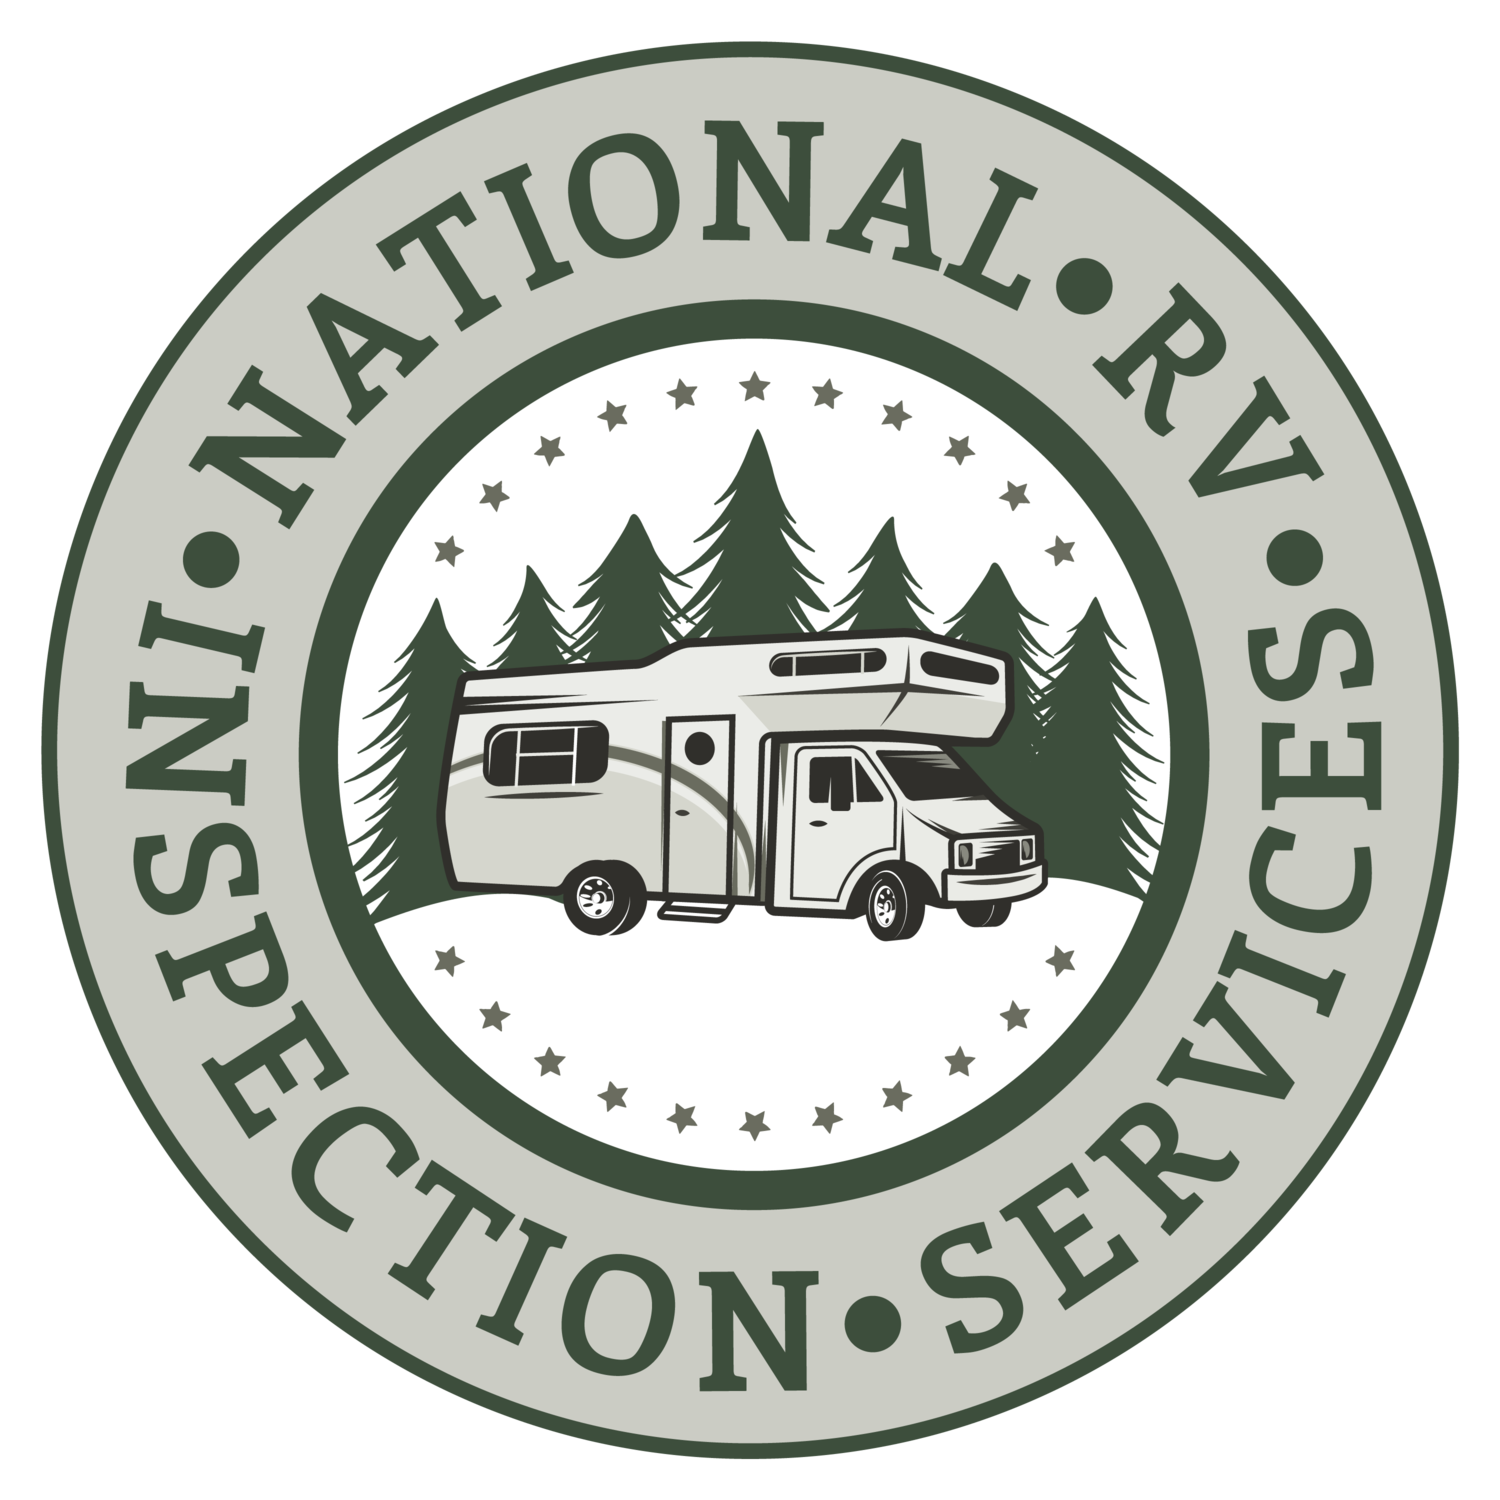 National RV Inspection Services